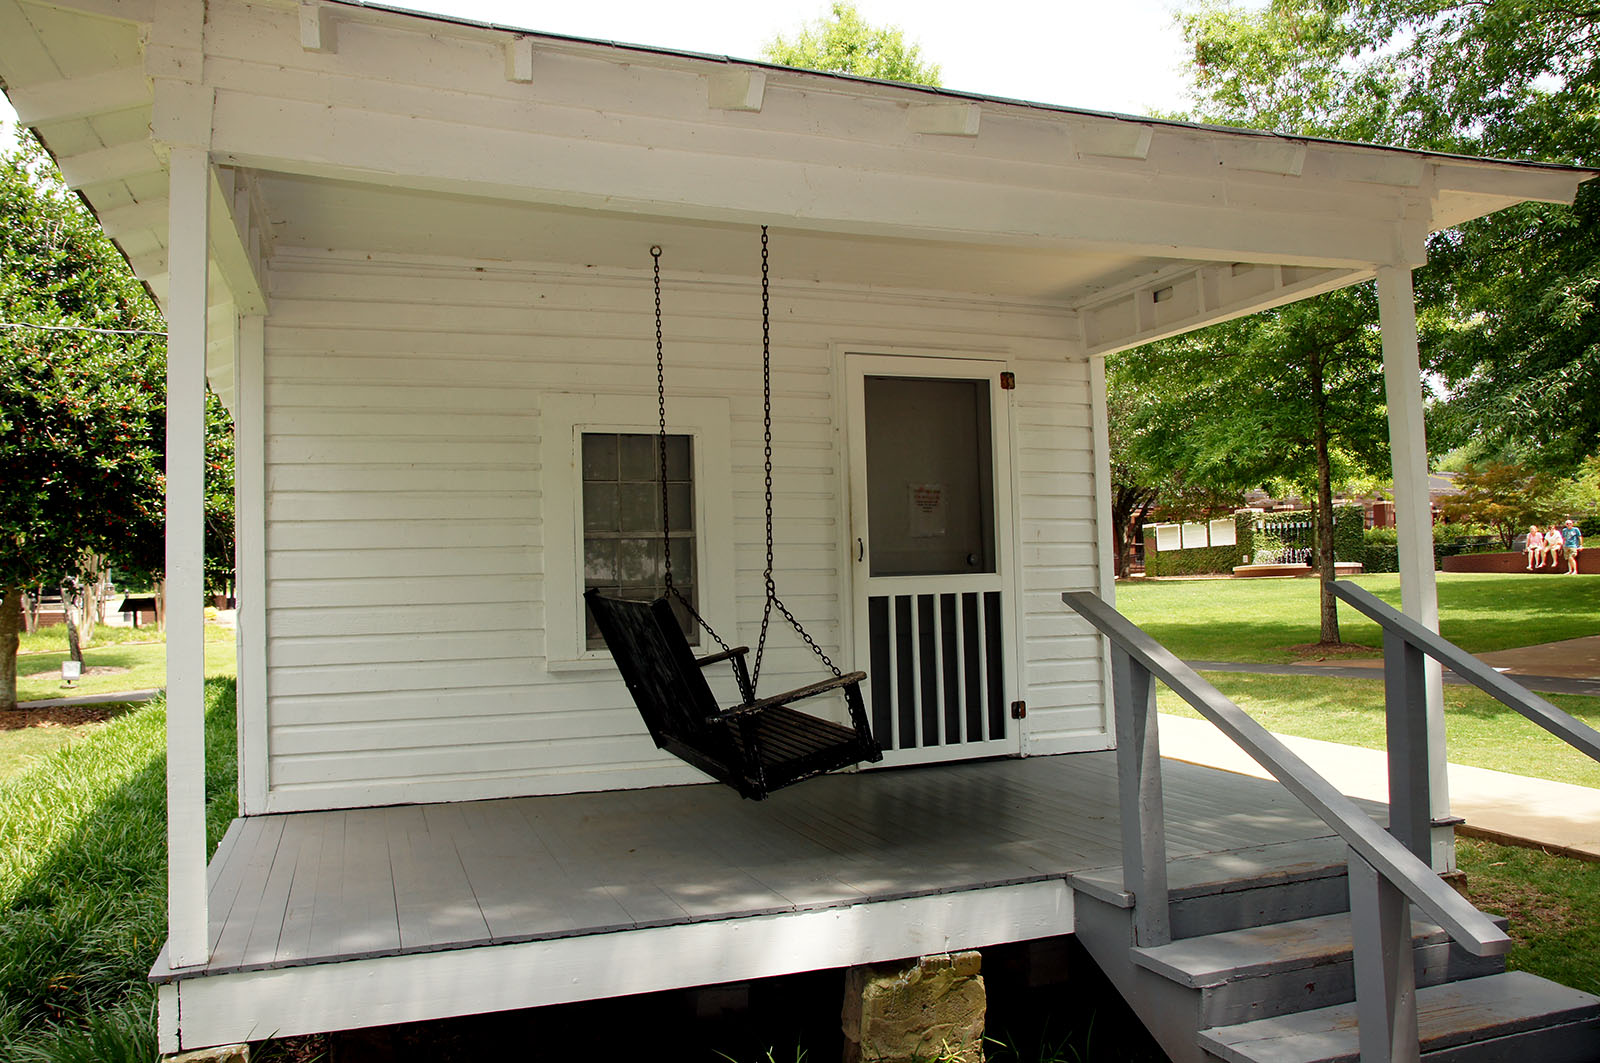 Elvis Birthplace